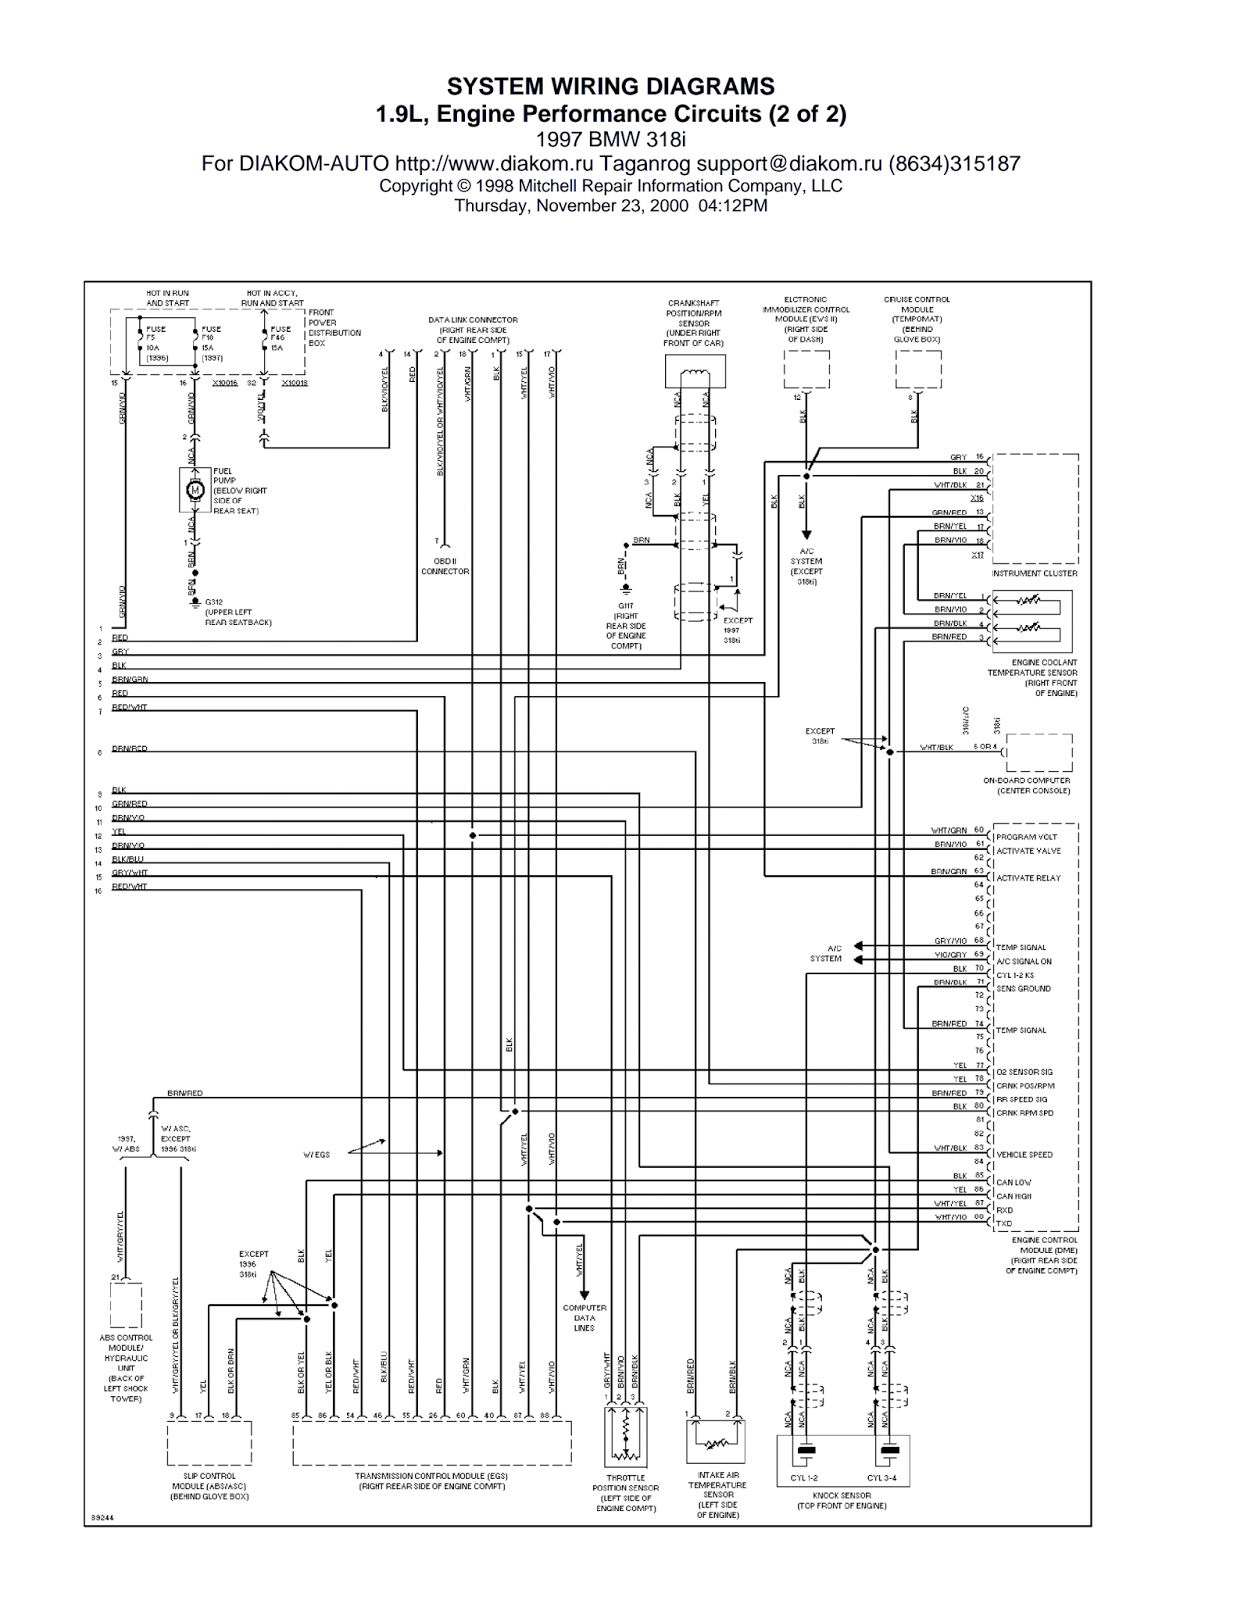 Wiring Diagrams And Free Manual Ebooks Bmw 318i 1 9l Engine Performance Circuits